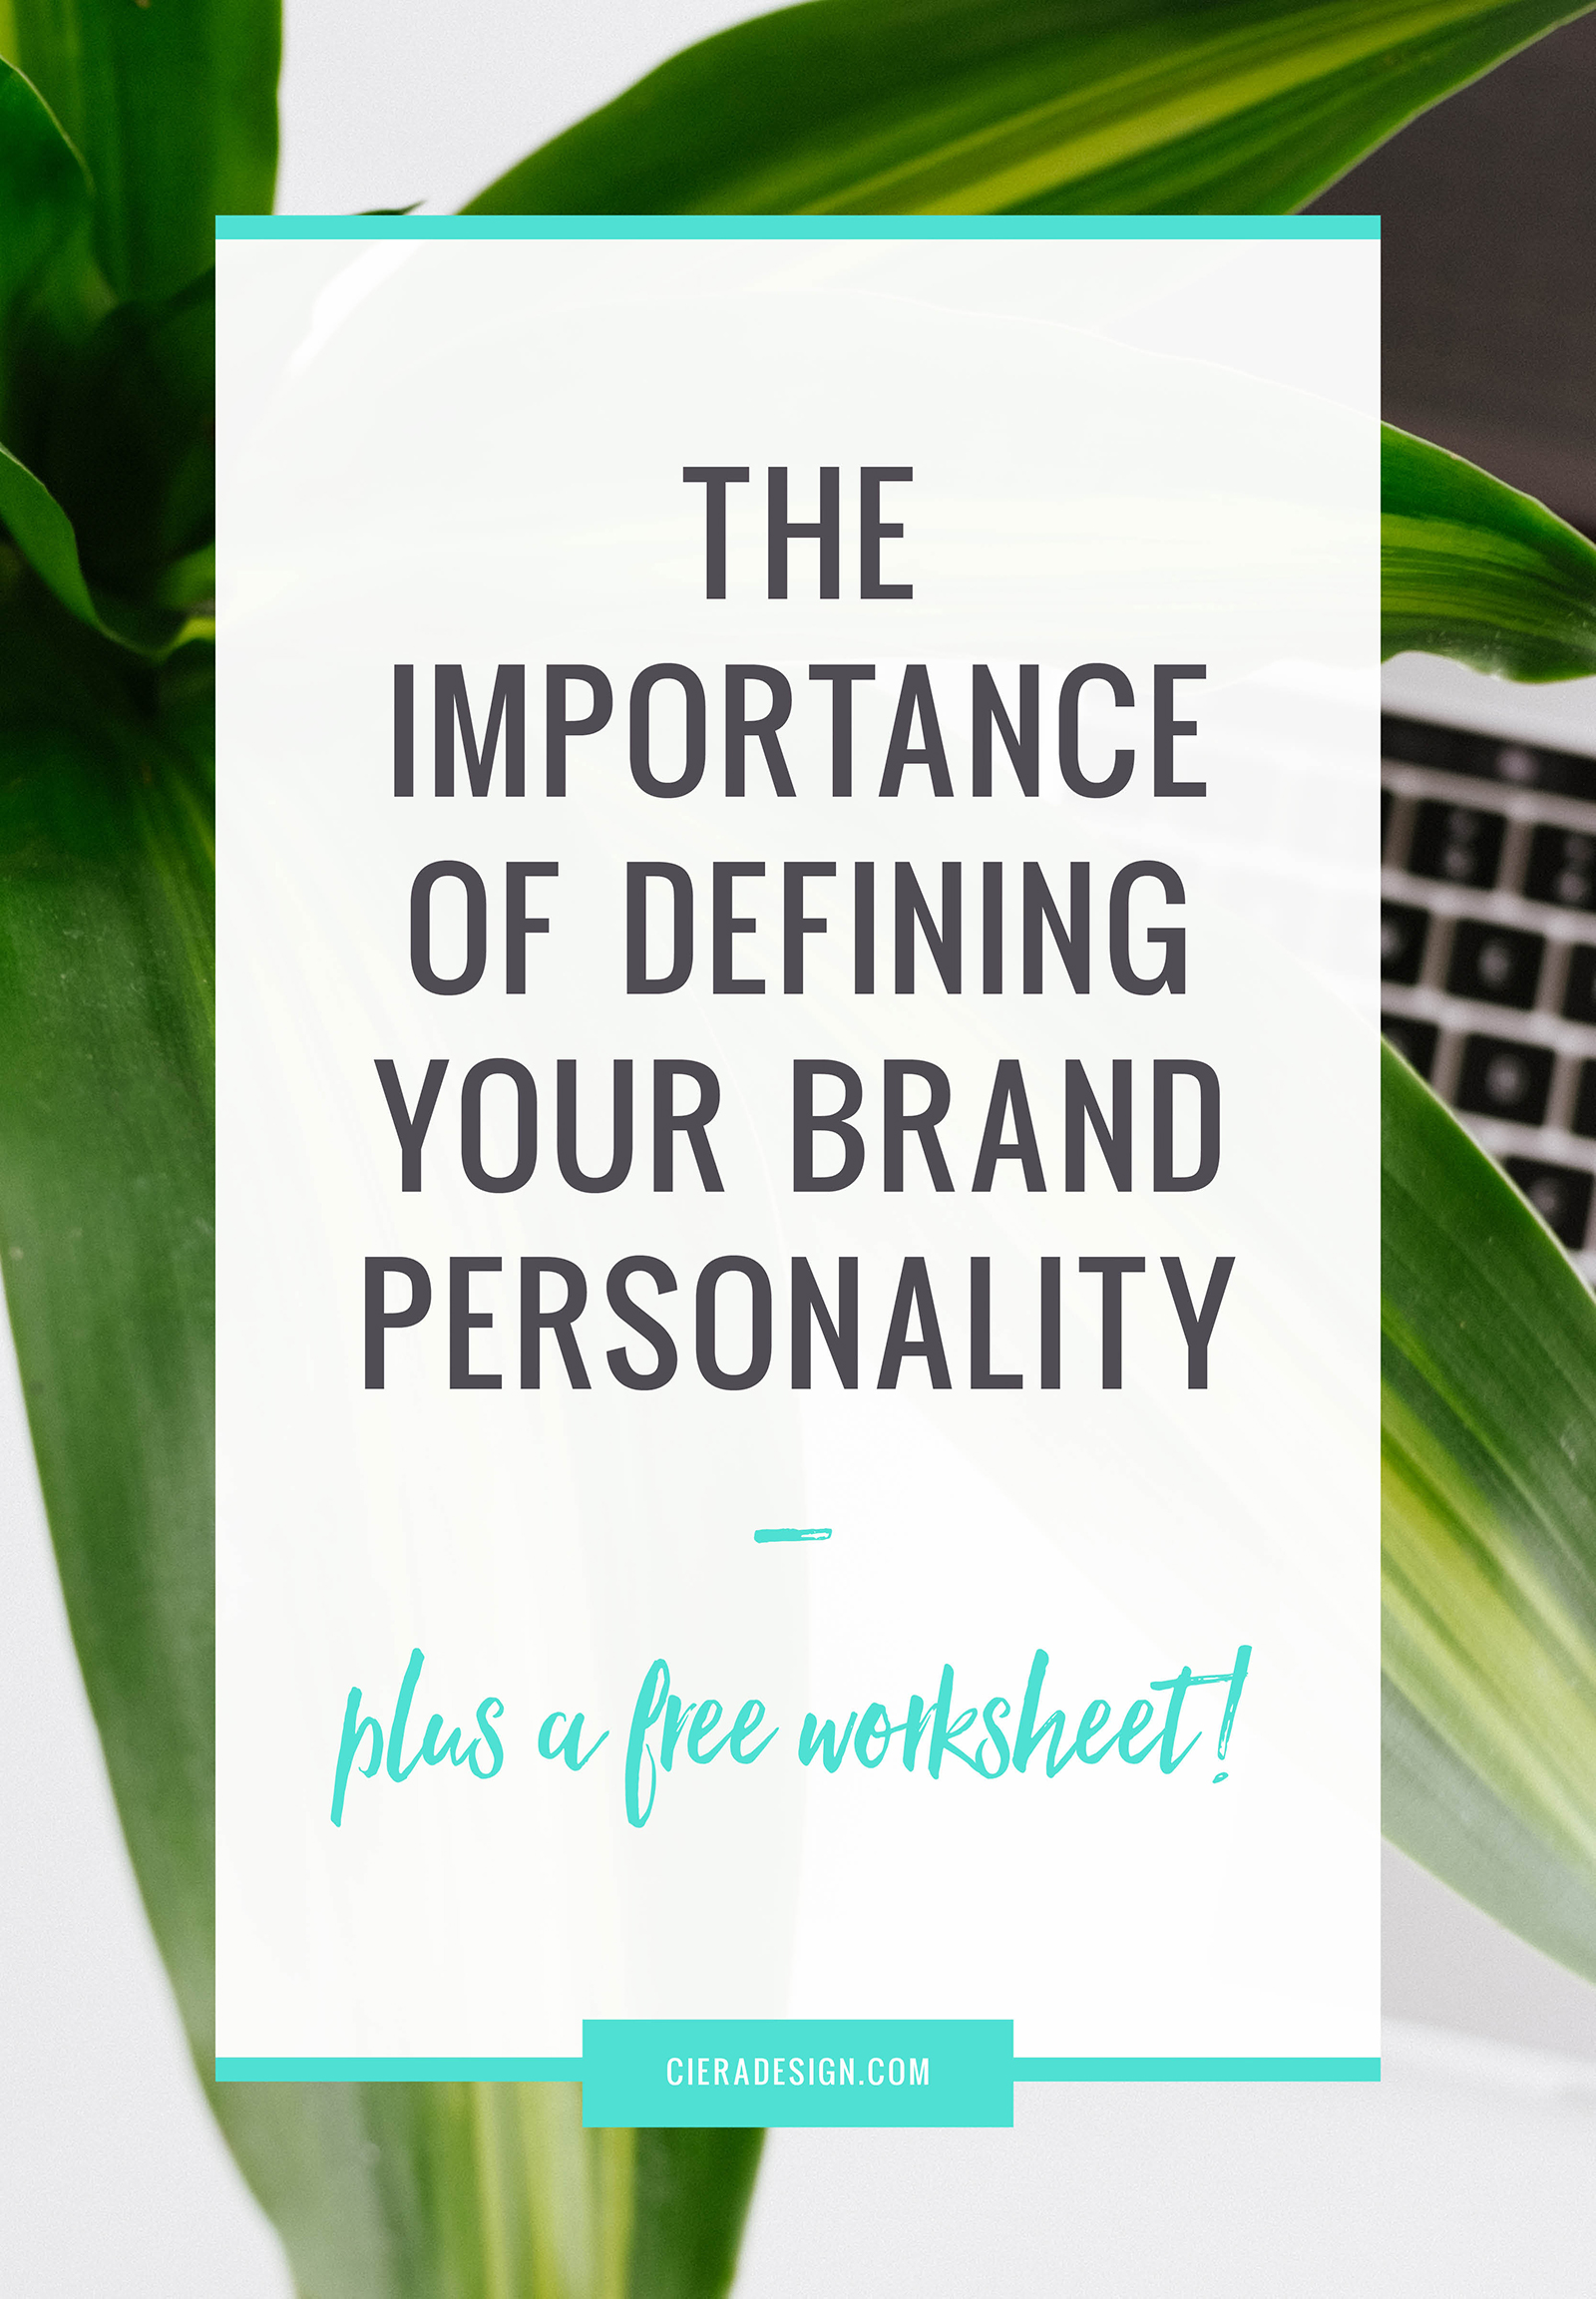 The Importance of Defining Your Brand Personality Plus A FREE Worksheet!